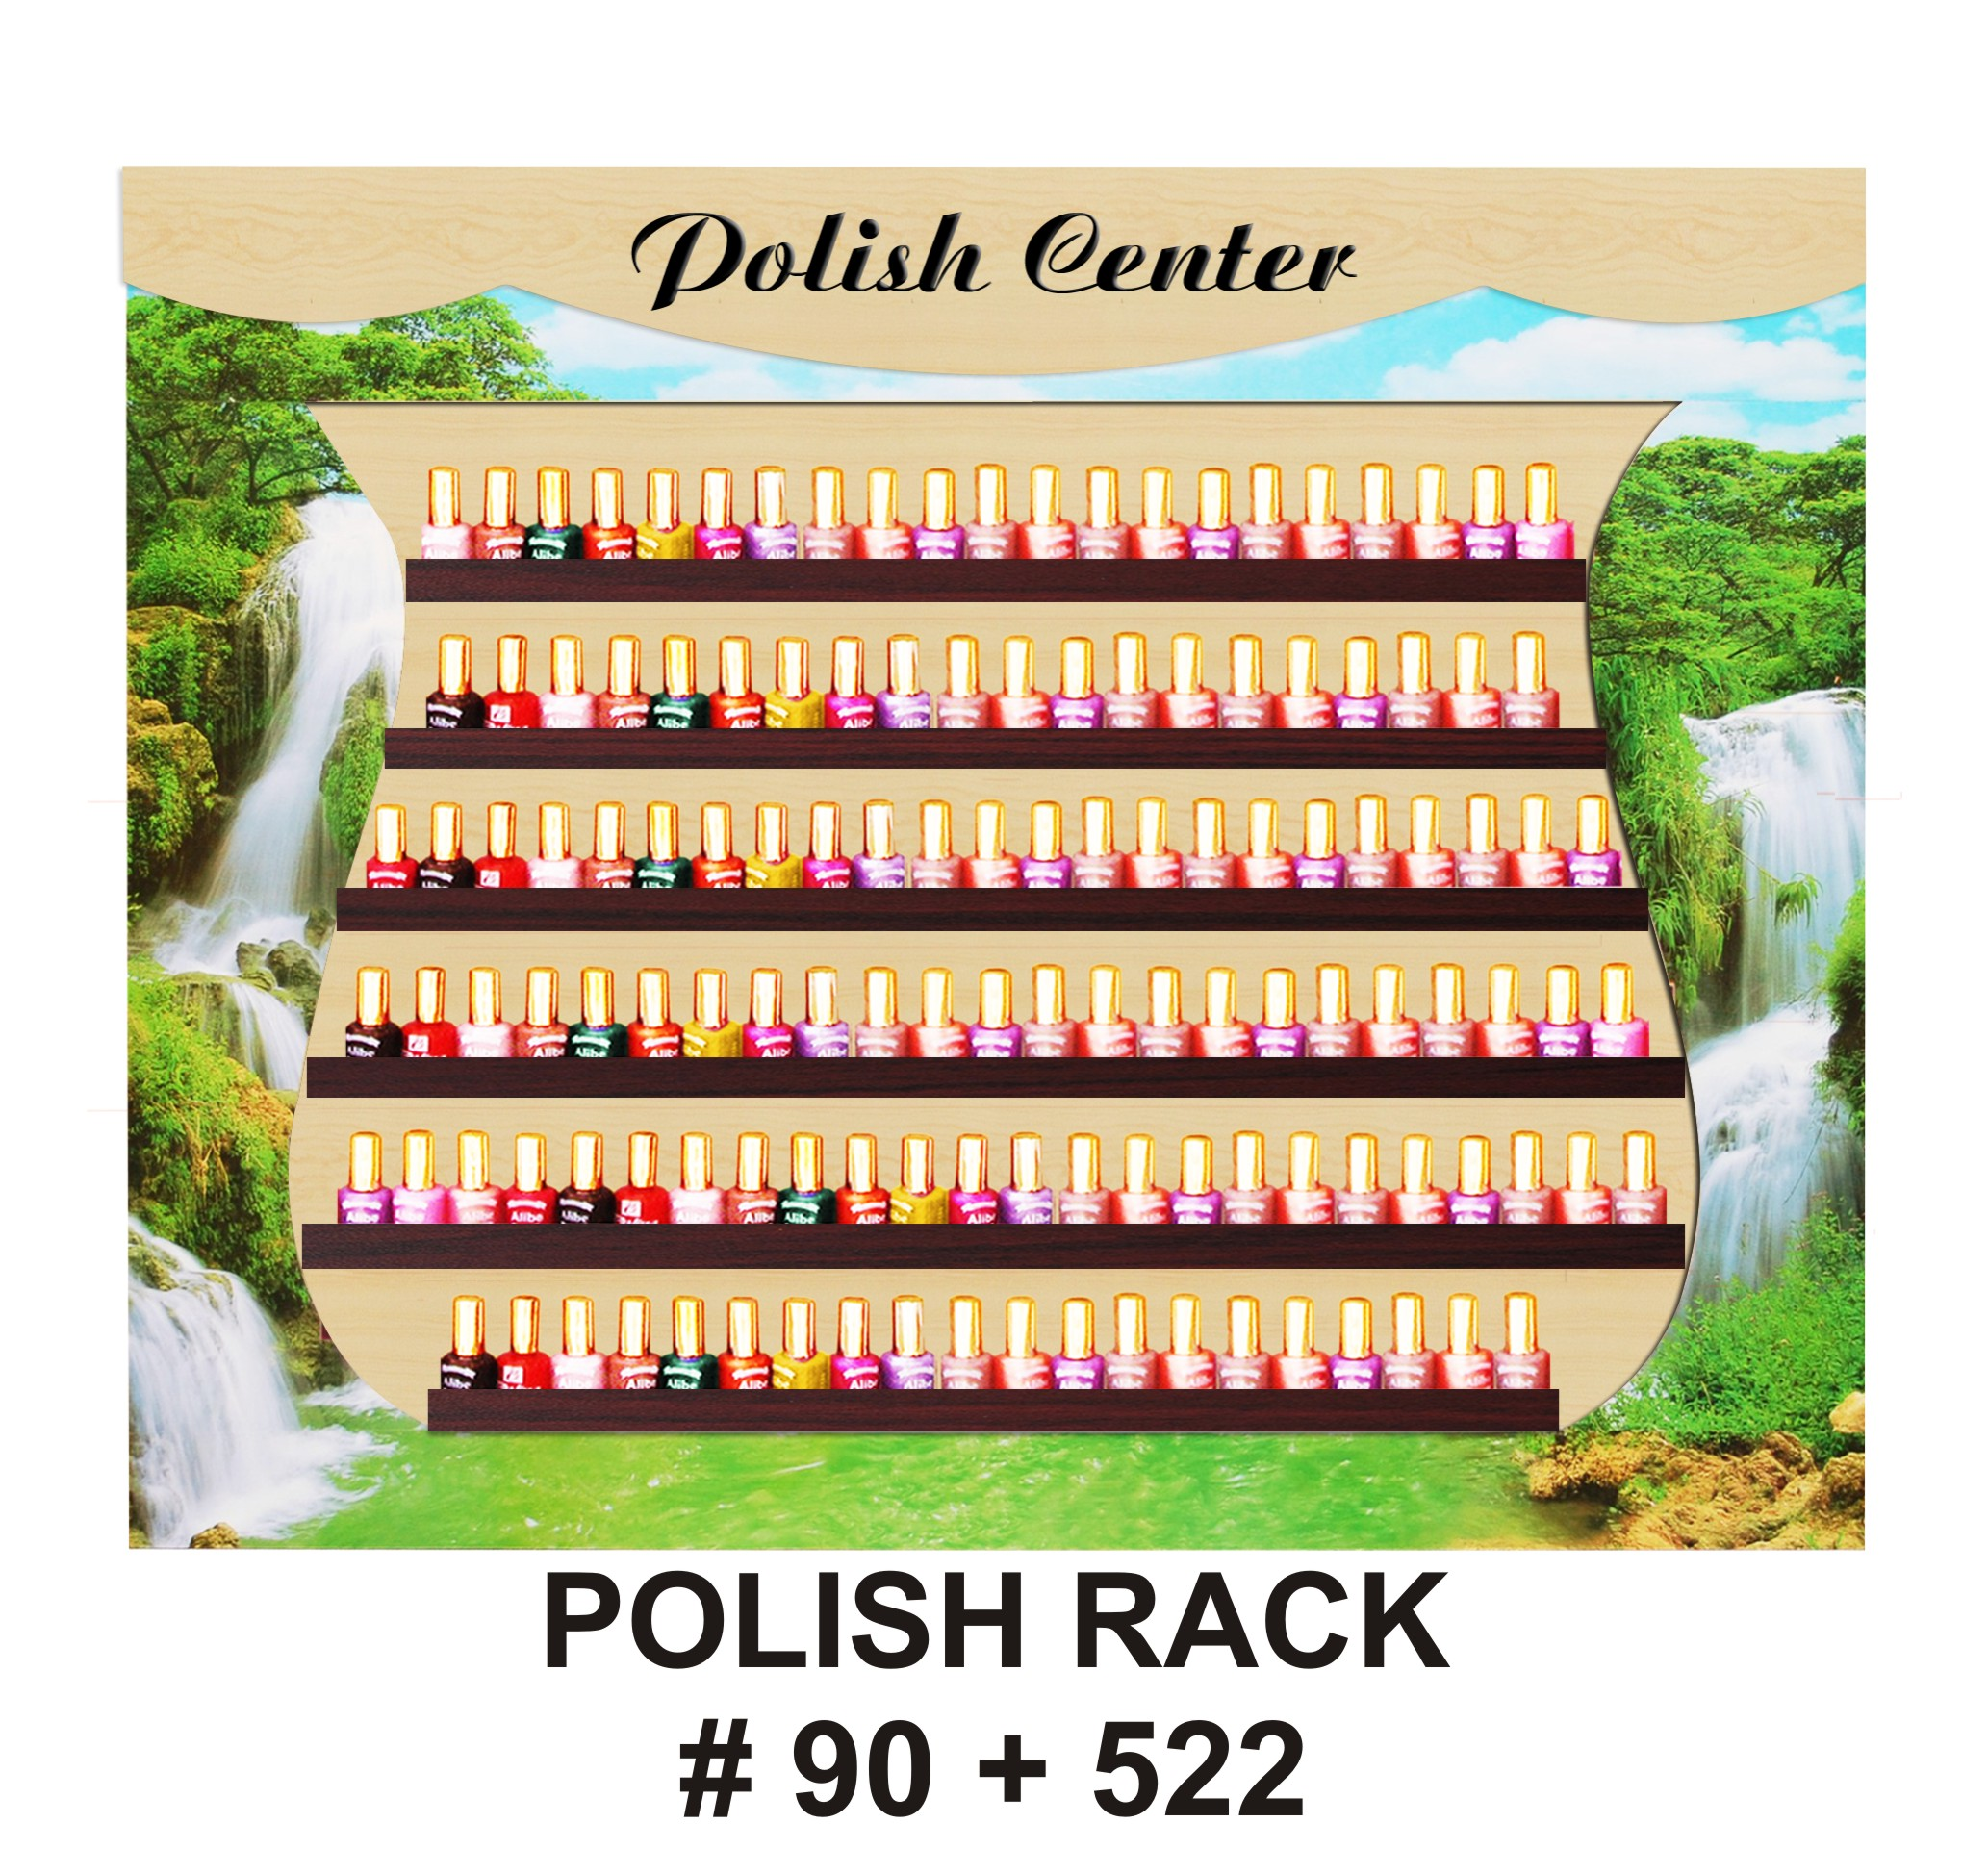 POLISH RACK WATER FALLS # 90 + 522